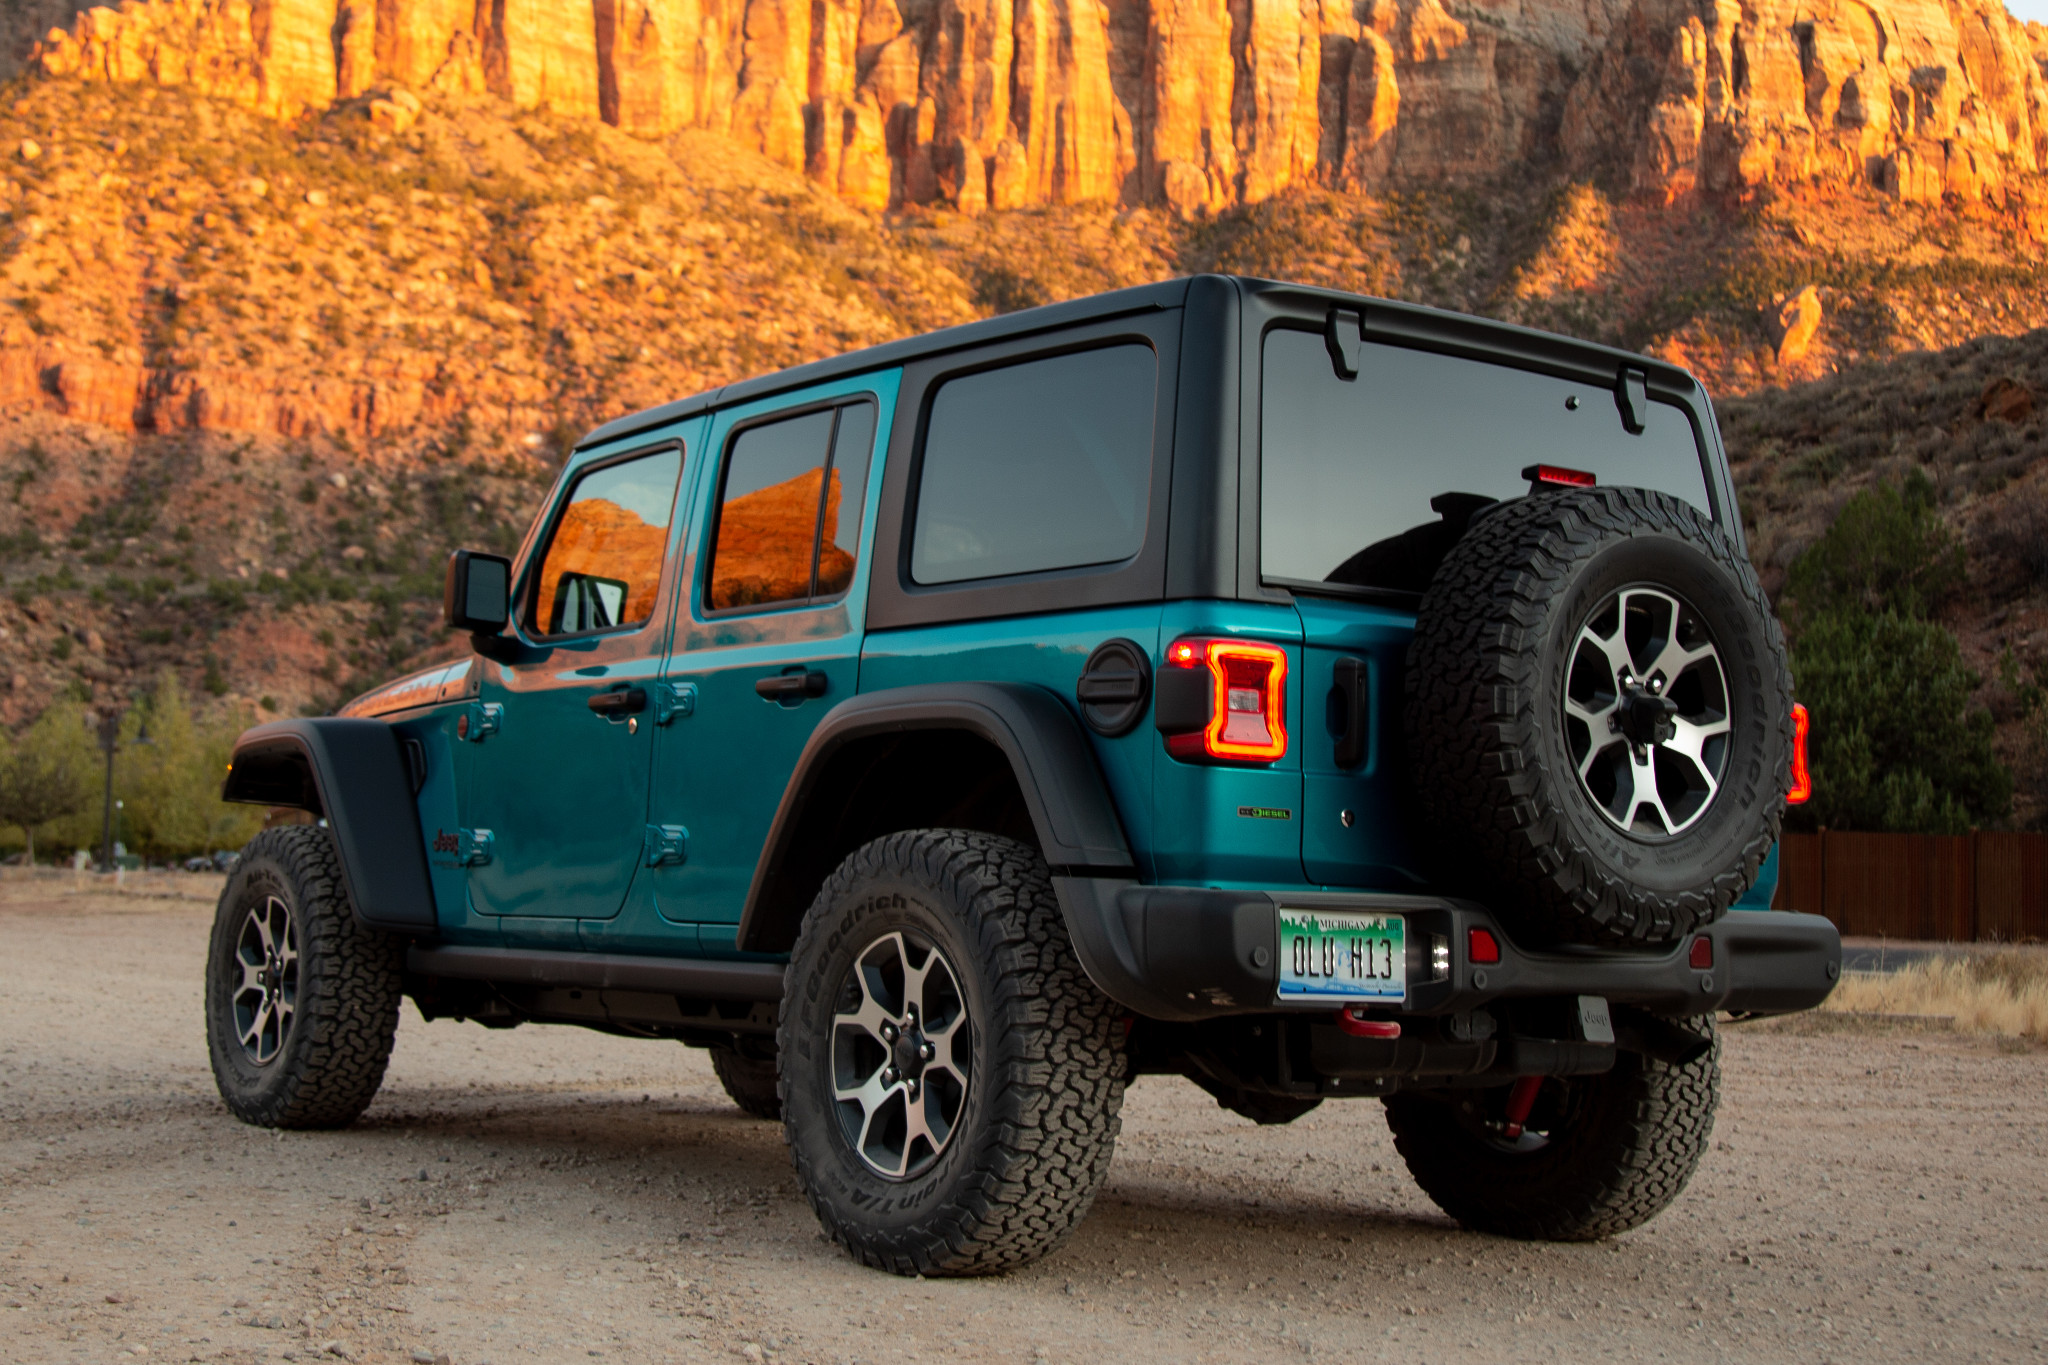 Diesel Jeep Wrangler >> Top 5 Reviews And Videos Of The Week Jeep Wrangler